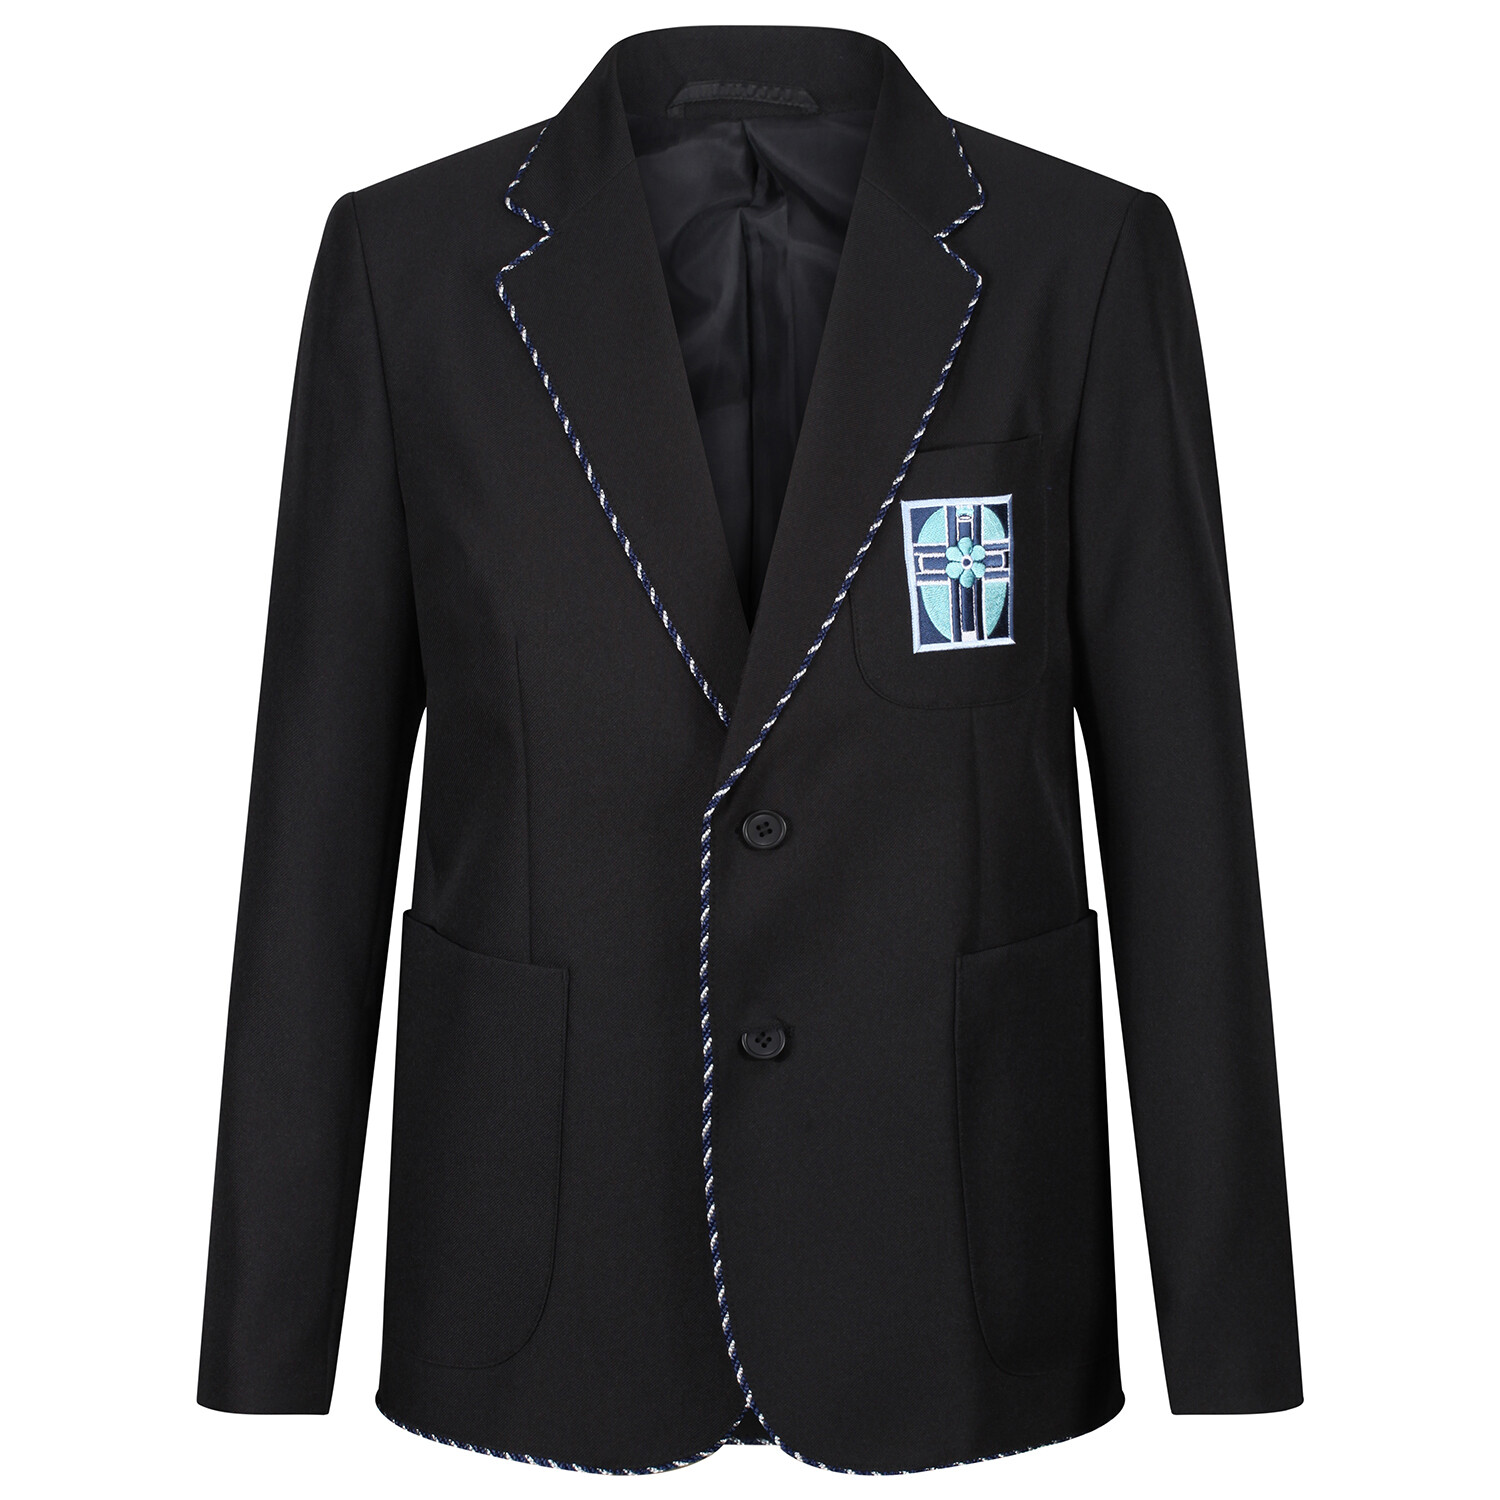 Notre Dame High Blazer with Braid